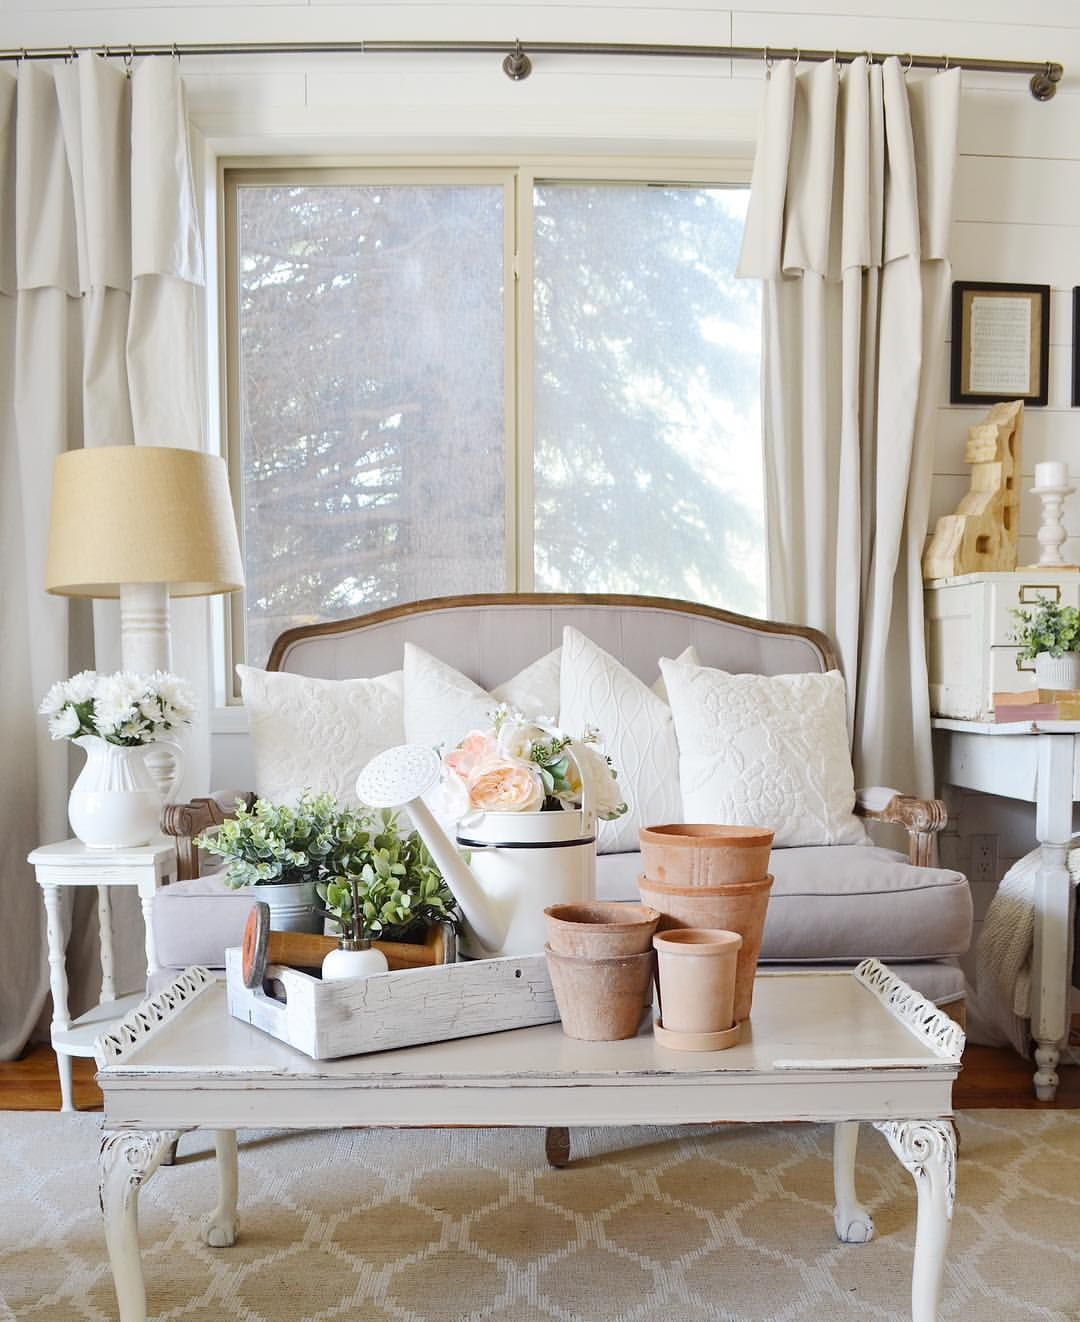 Farmhouse style spring decor in the living room | Spring ...